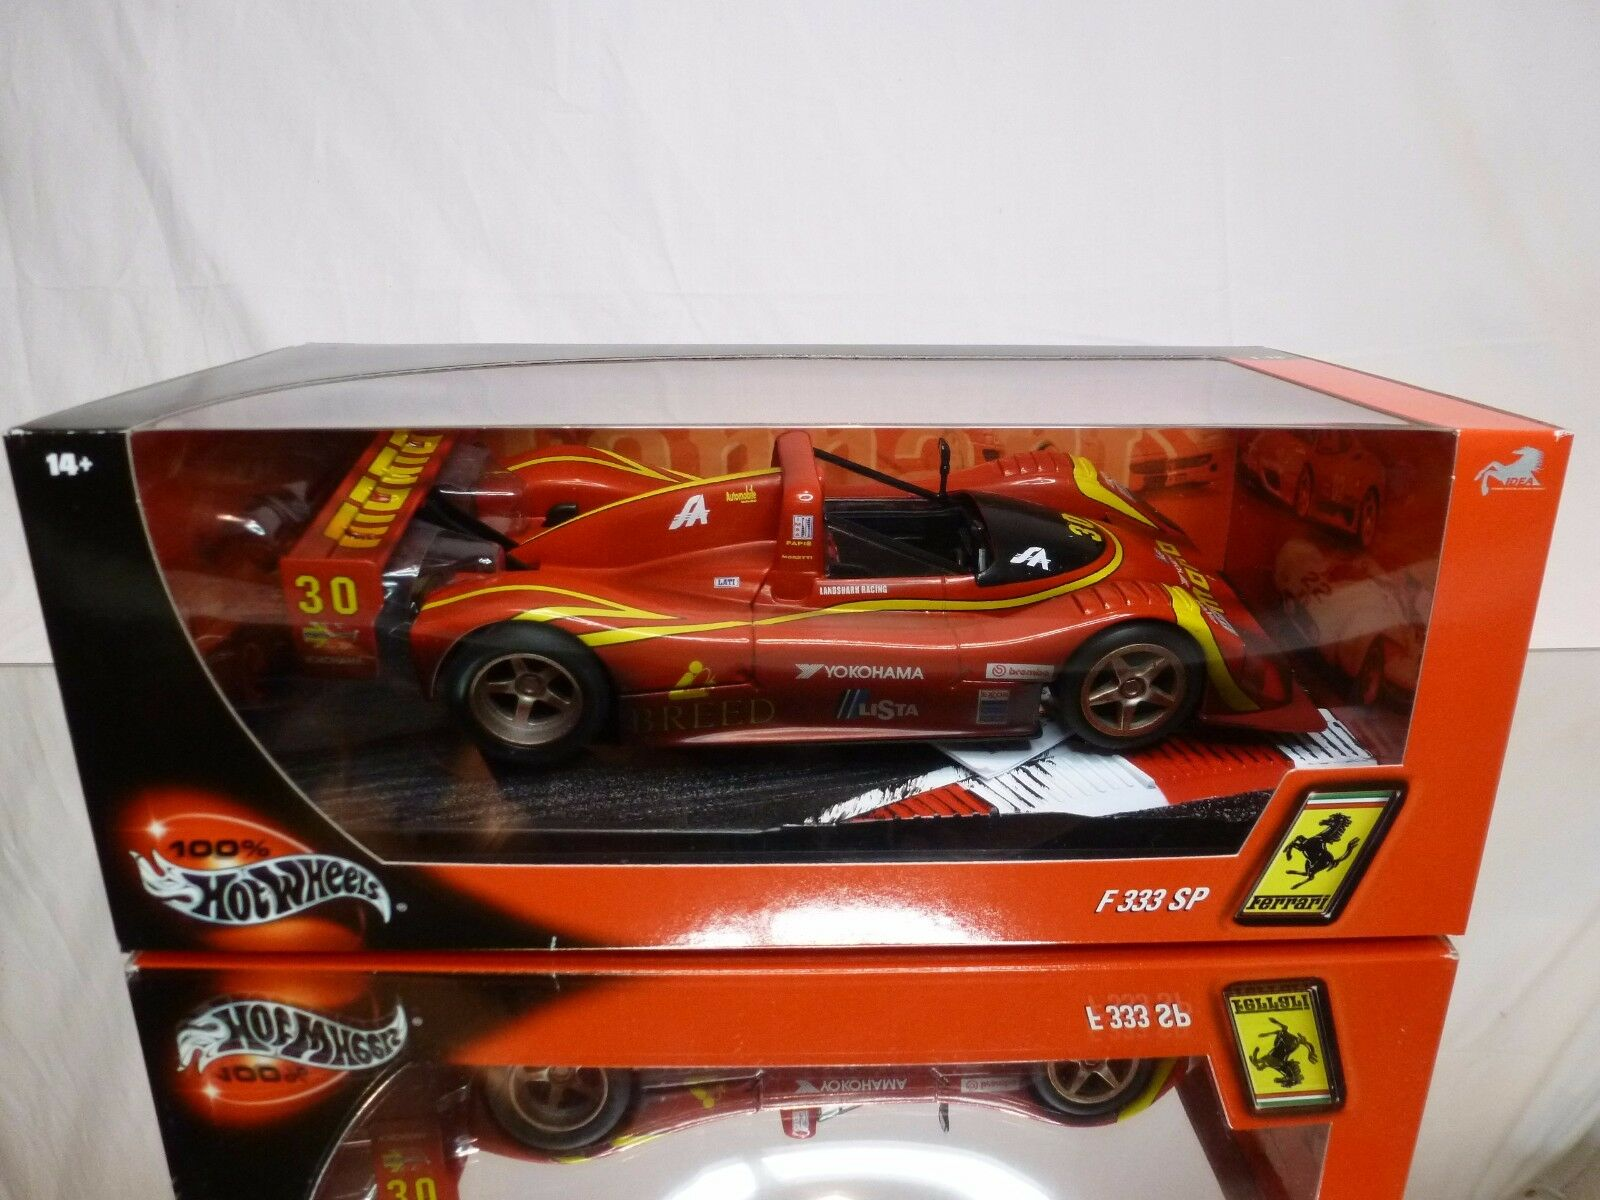 HOT WHEELS 29750 FERRARI F333 SP 30 - MOMO  - Rojo  - EXCELLENT IN BOX